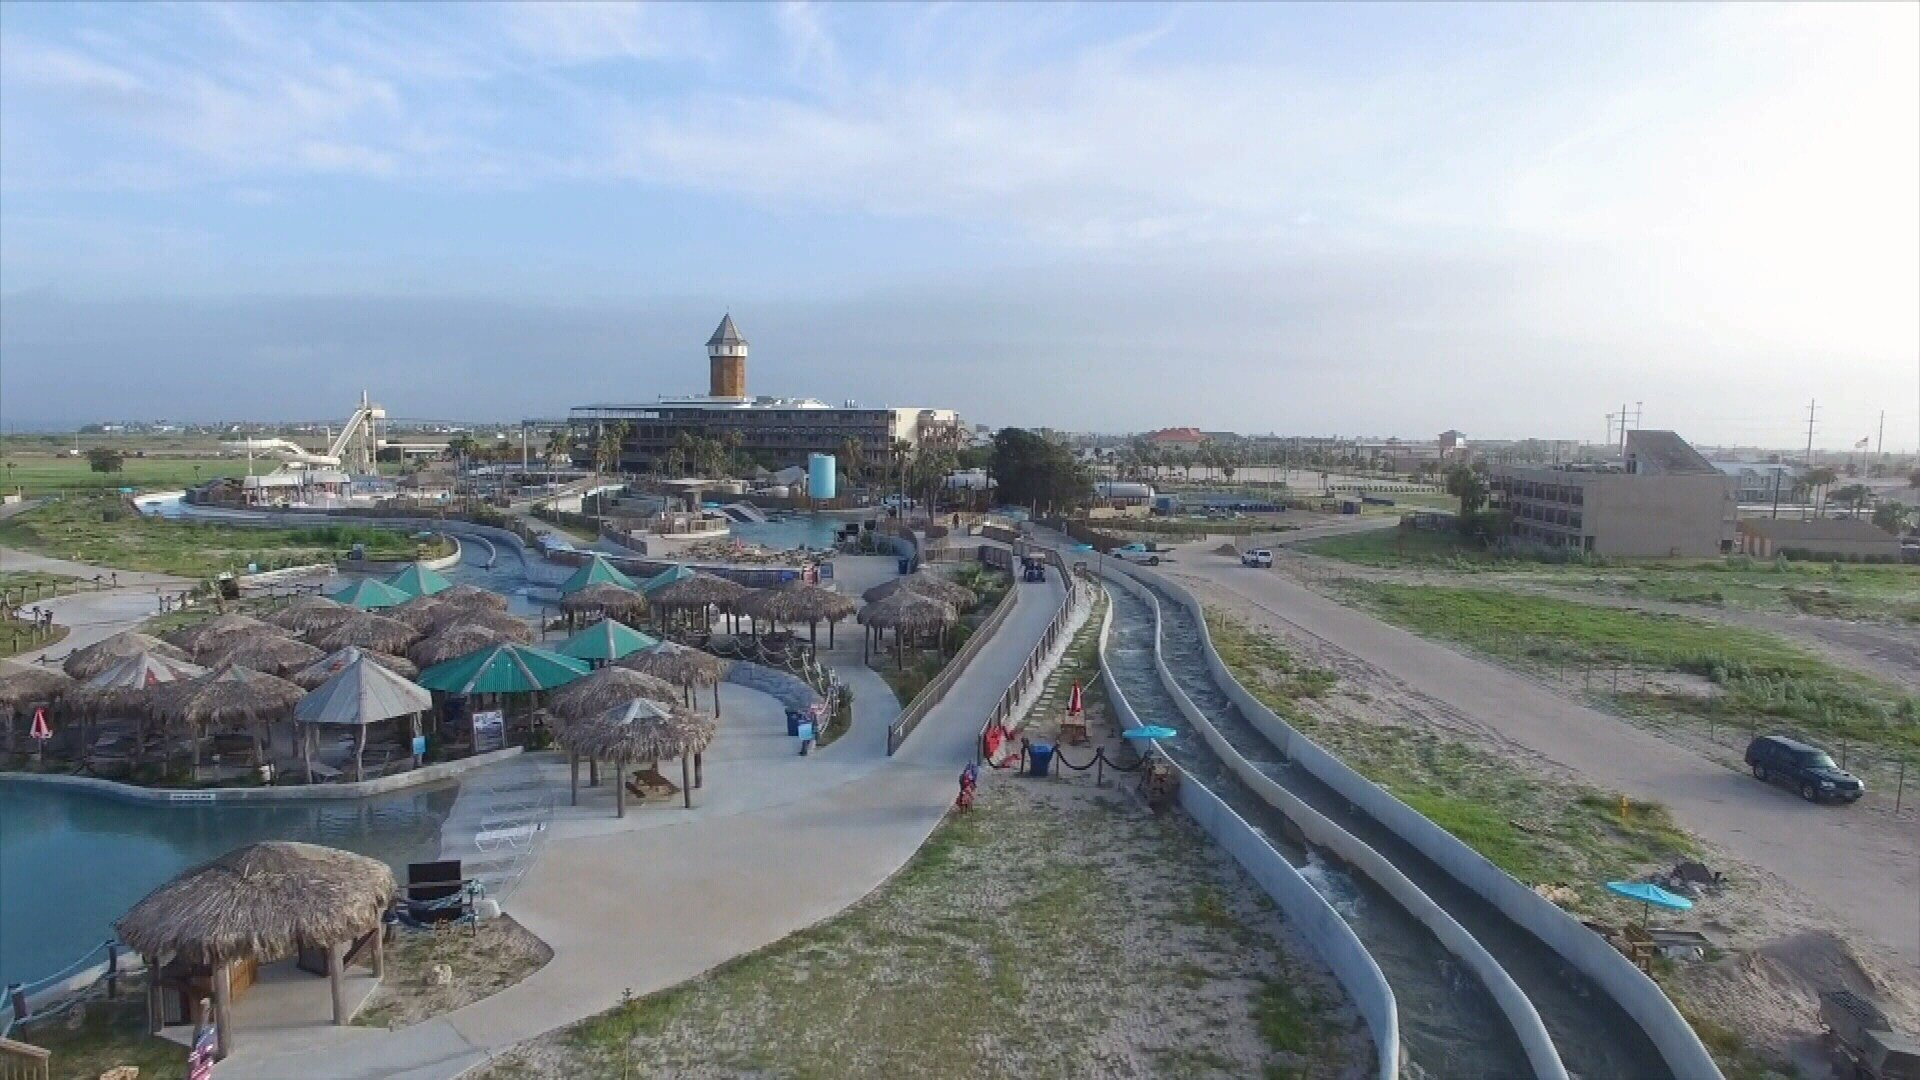 IBC executives say the bank delayed the auction, and is instead allowing a private commercial real estate company to market and try to sell the water park over the next two months.